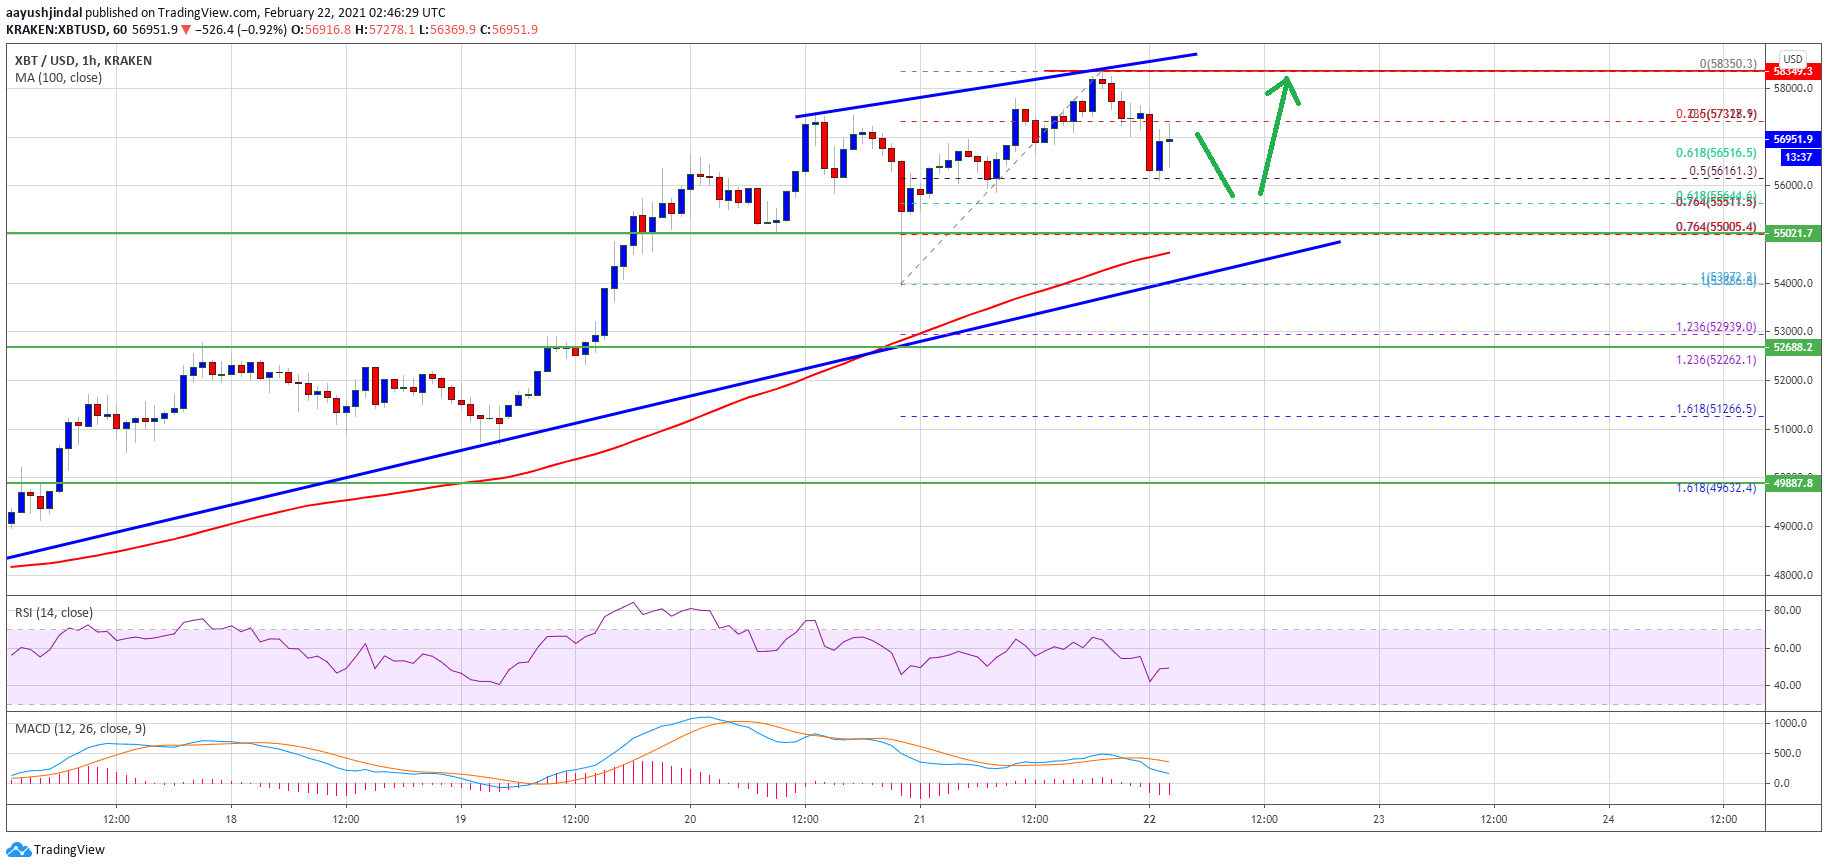 TA: Bitcoin Price Climbs Above $58K, Why Bulls Could Aim $60K